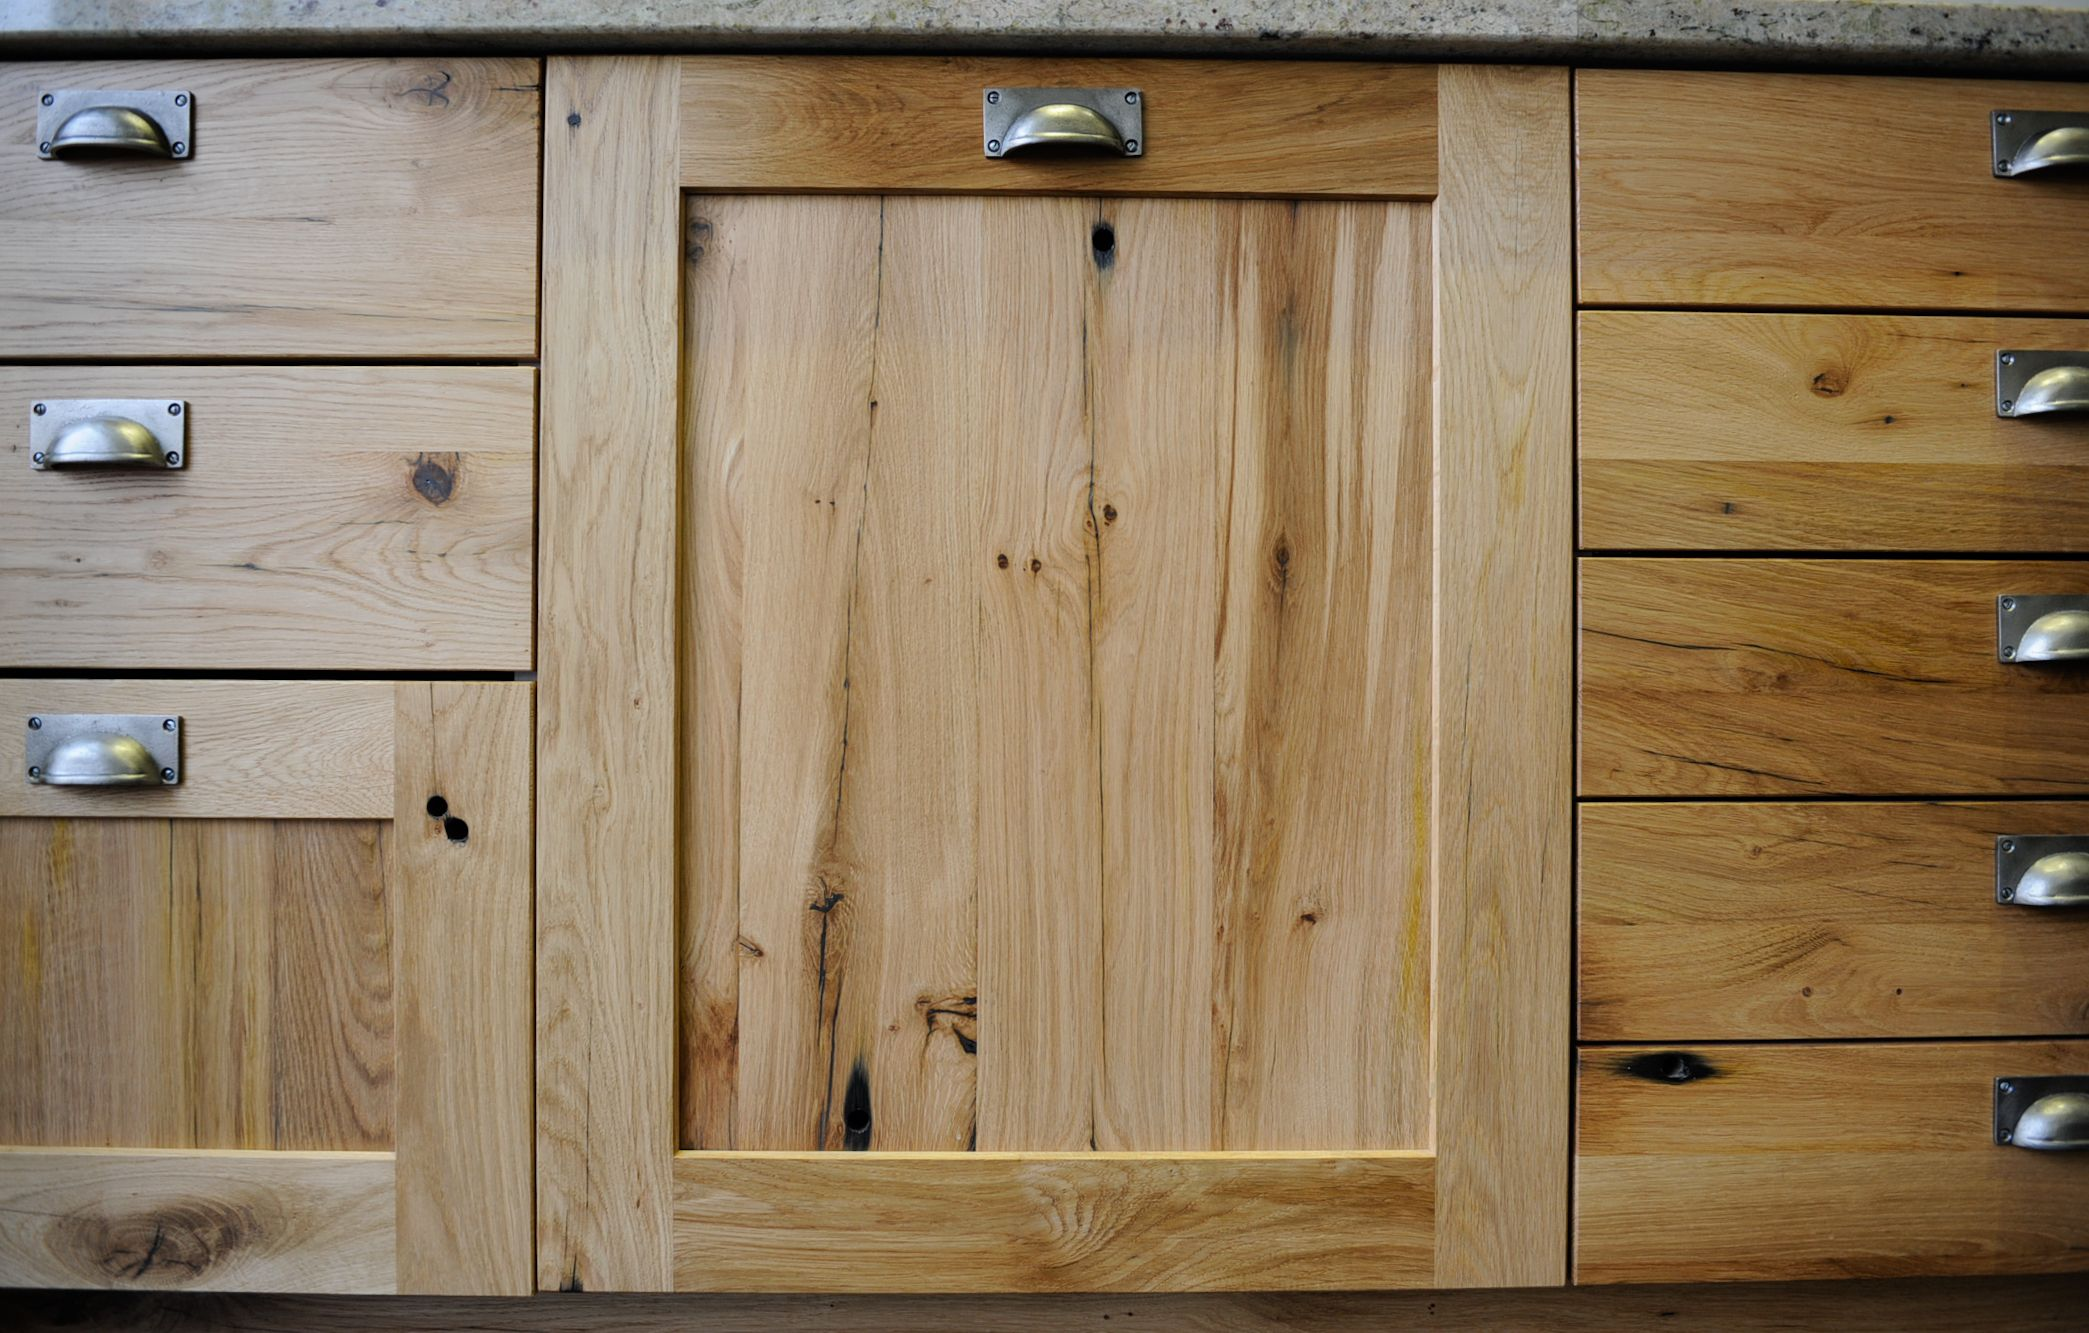 Reclaimed oak kitchen doors and drawers made from recycled